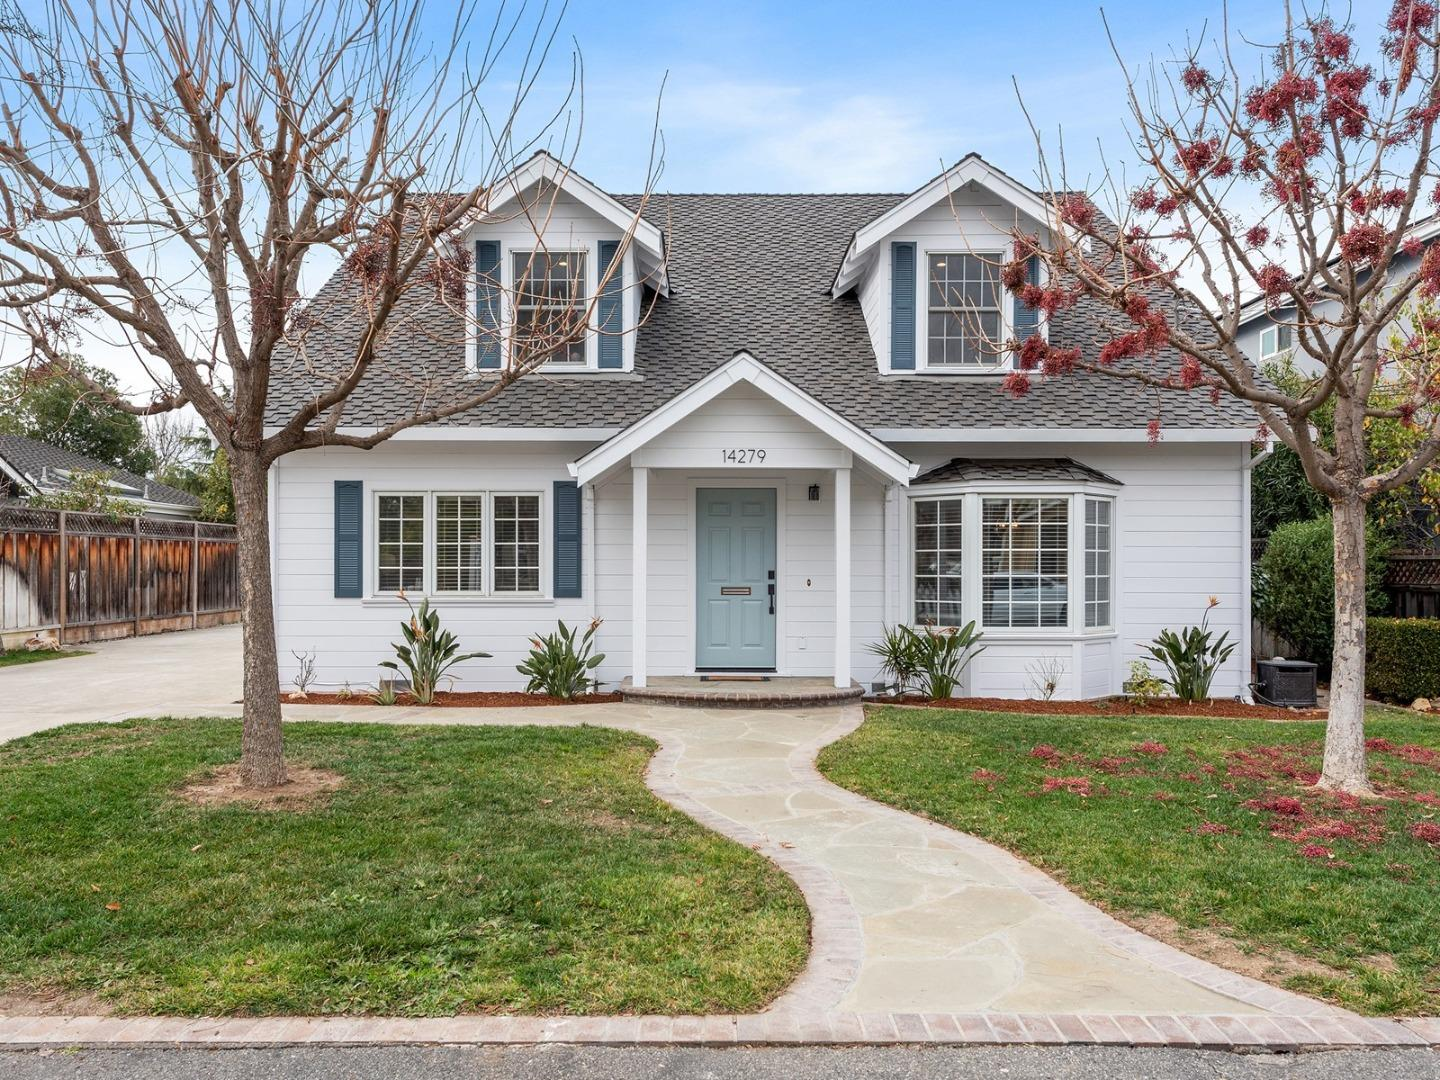 Detail Gallery Image 1 of 1 For 14279 Nova Scotia Ave, San Jose,  CA 95124 - 5 Beds   3/1 Baths